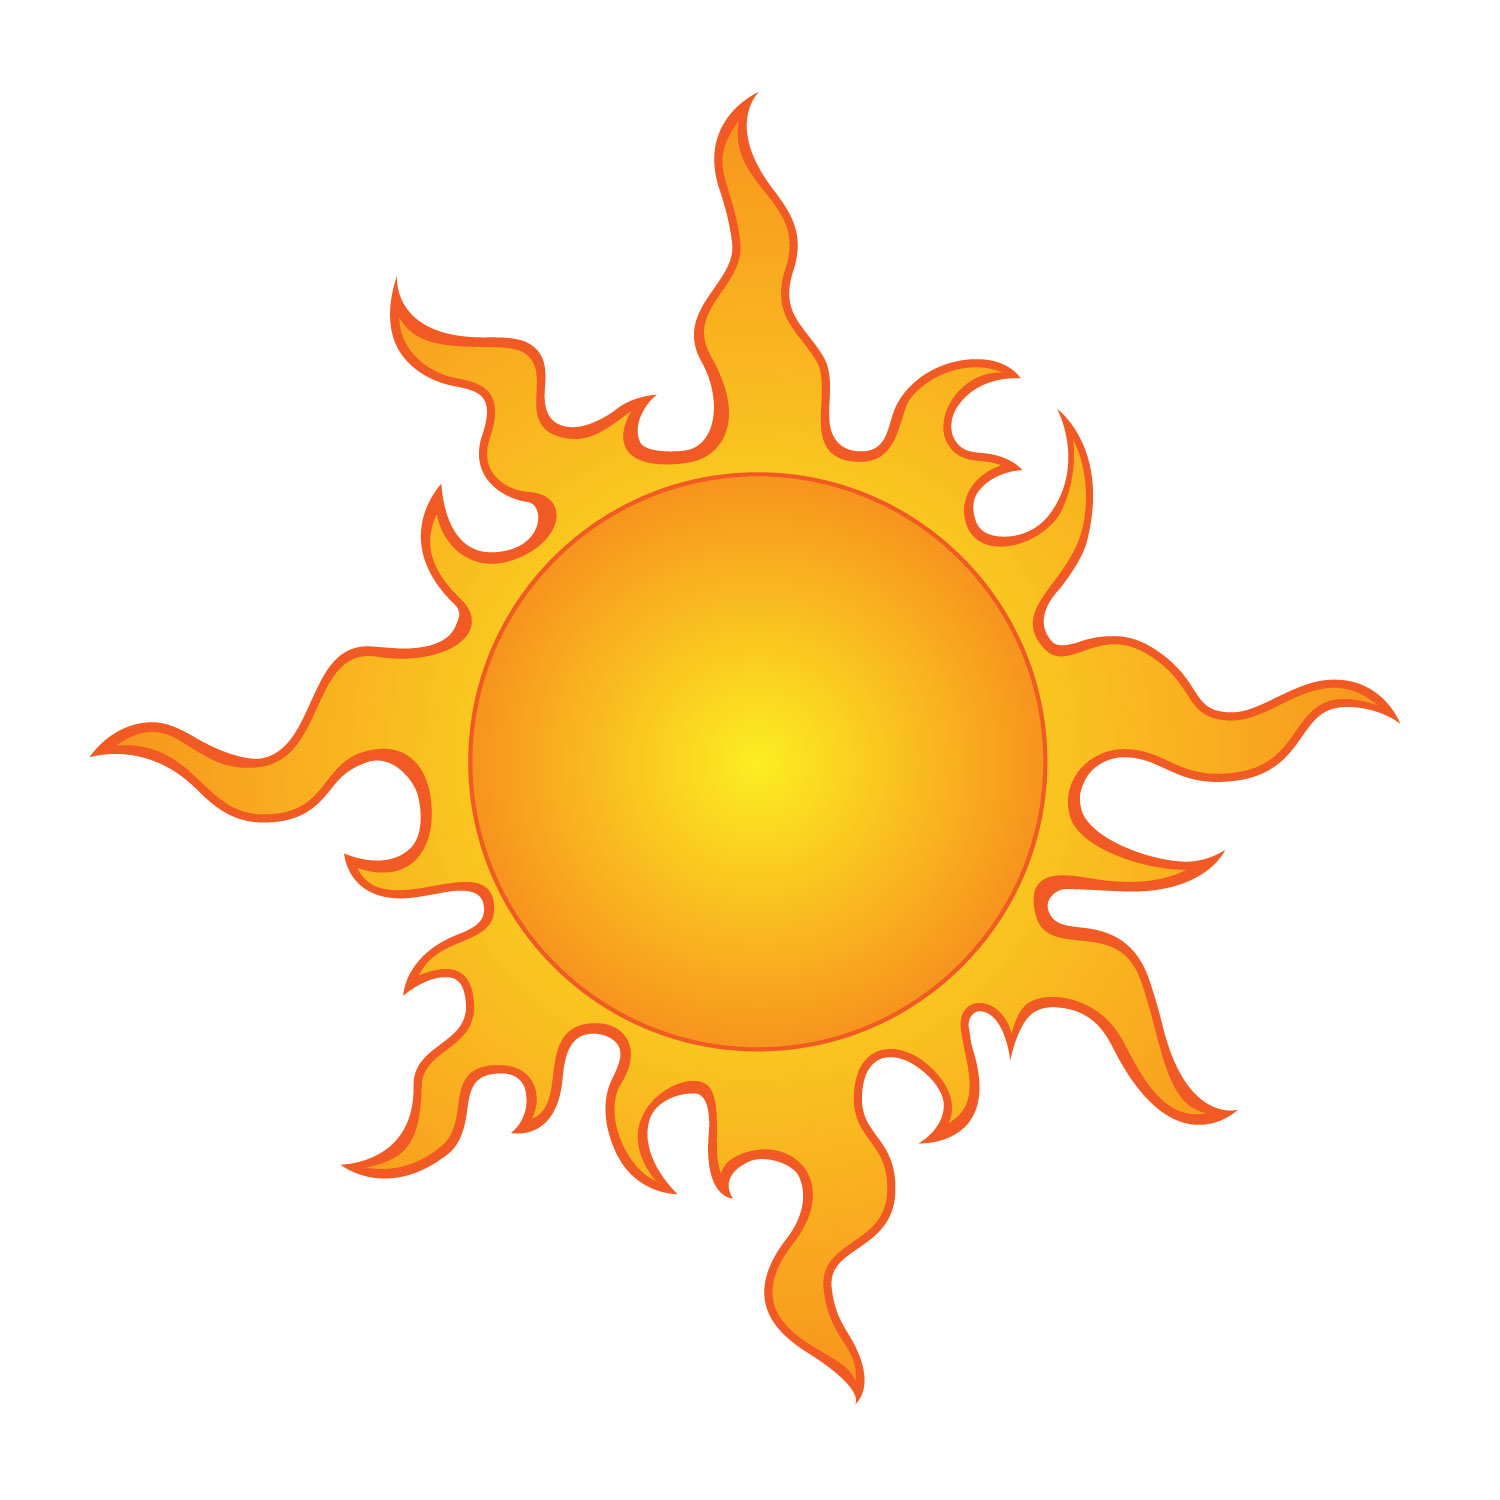 Free Sun Drawings, Download Free Clip Art, Free Clip Art on.